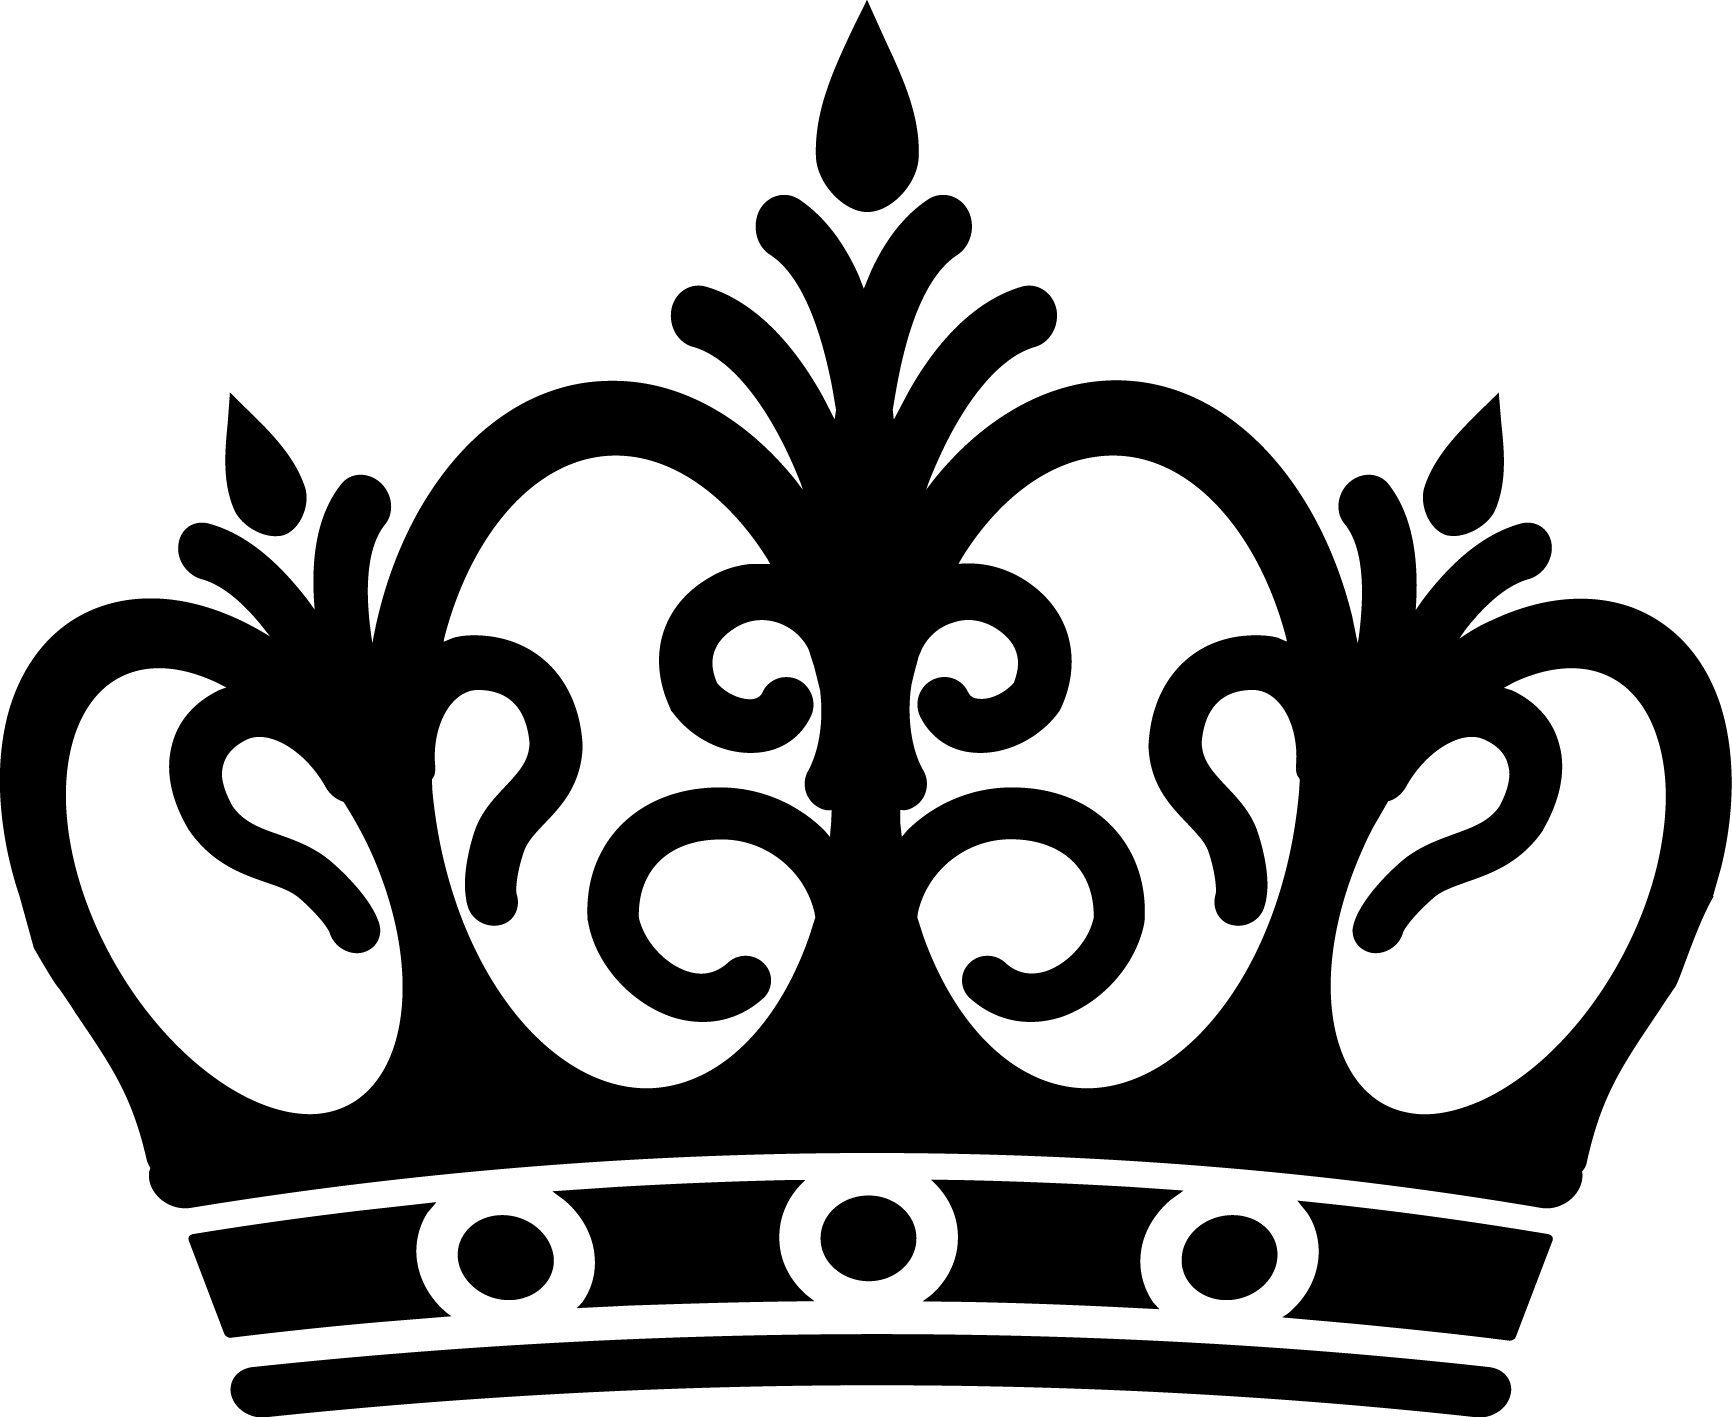 Queen Crown Logo Logodix